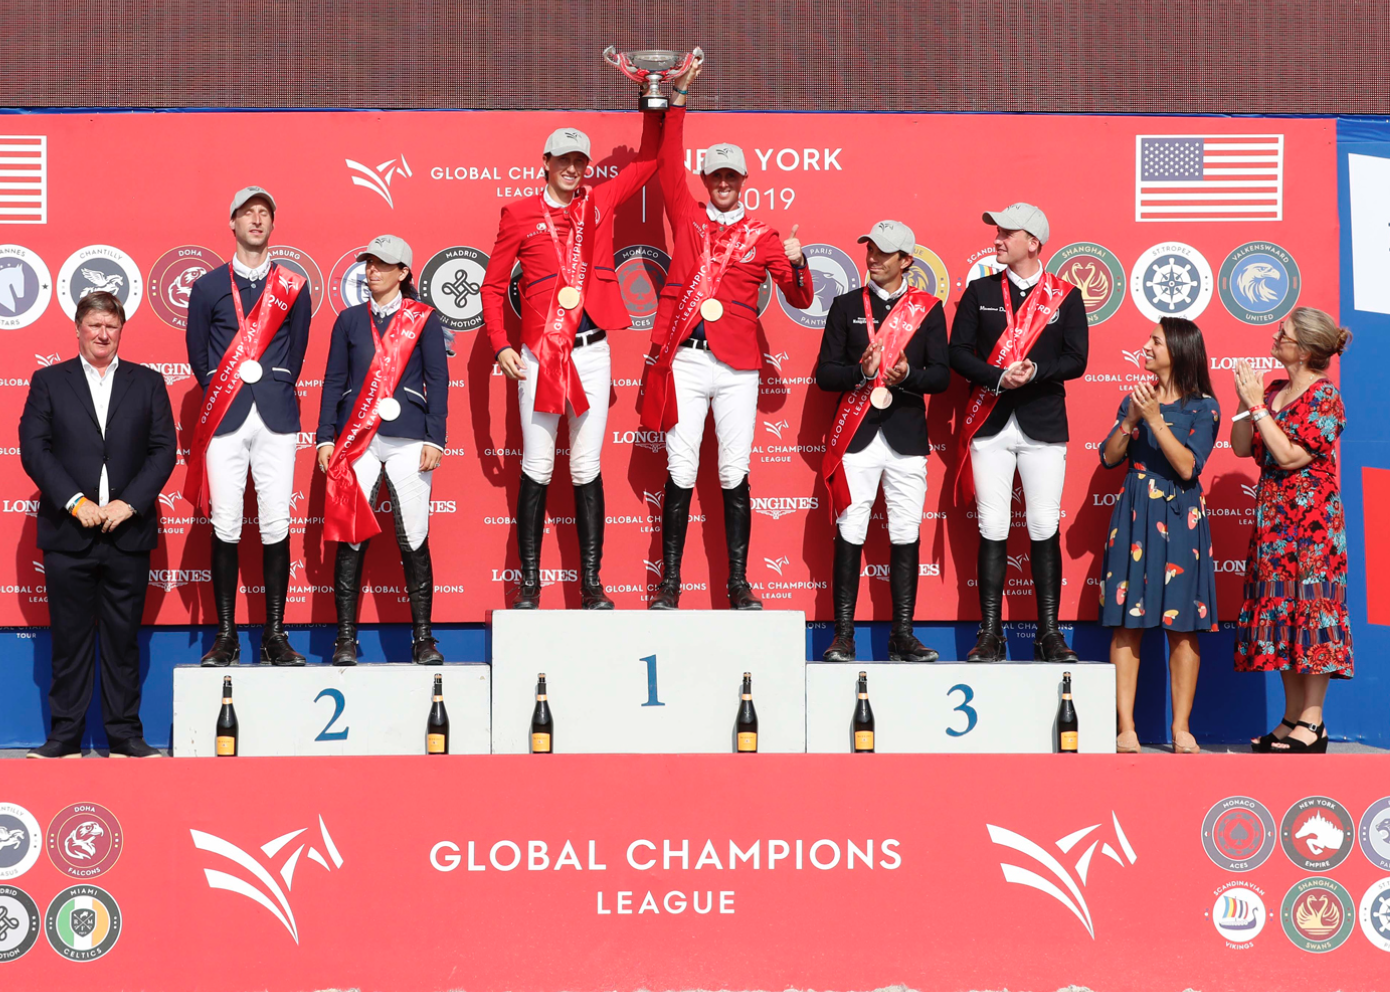 St Tropez Pirates finish as Runners-up in the 2019 GCL Championship